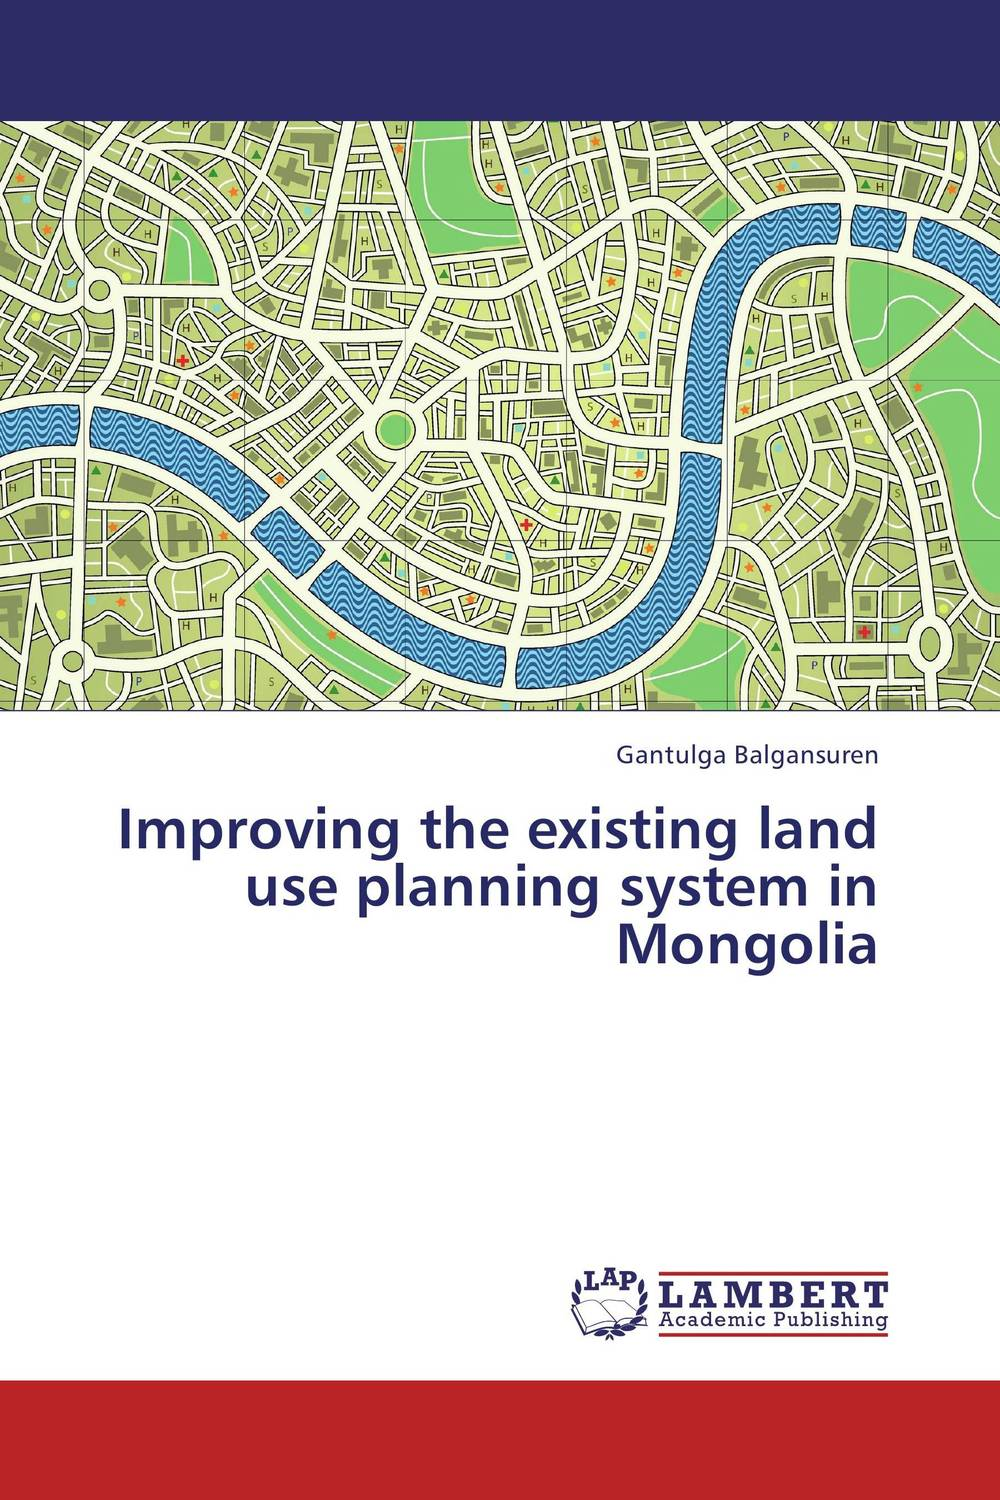 Improving the existing land use planning system in Mongolia